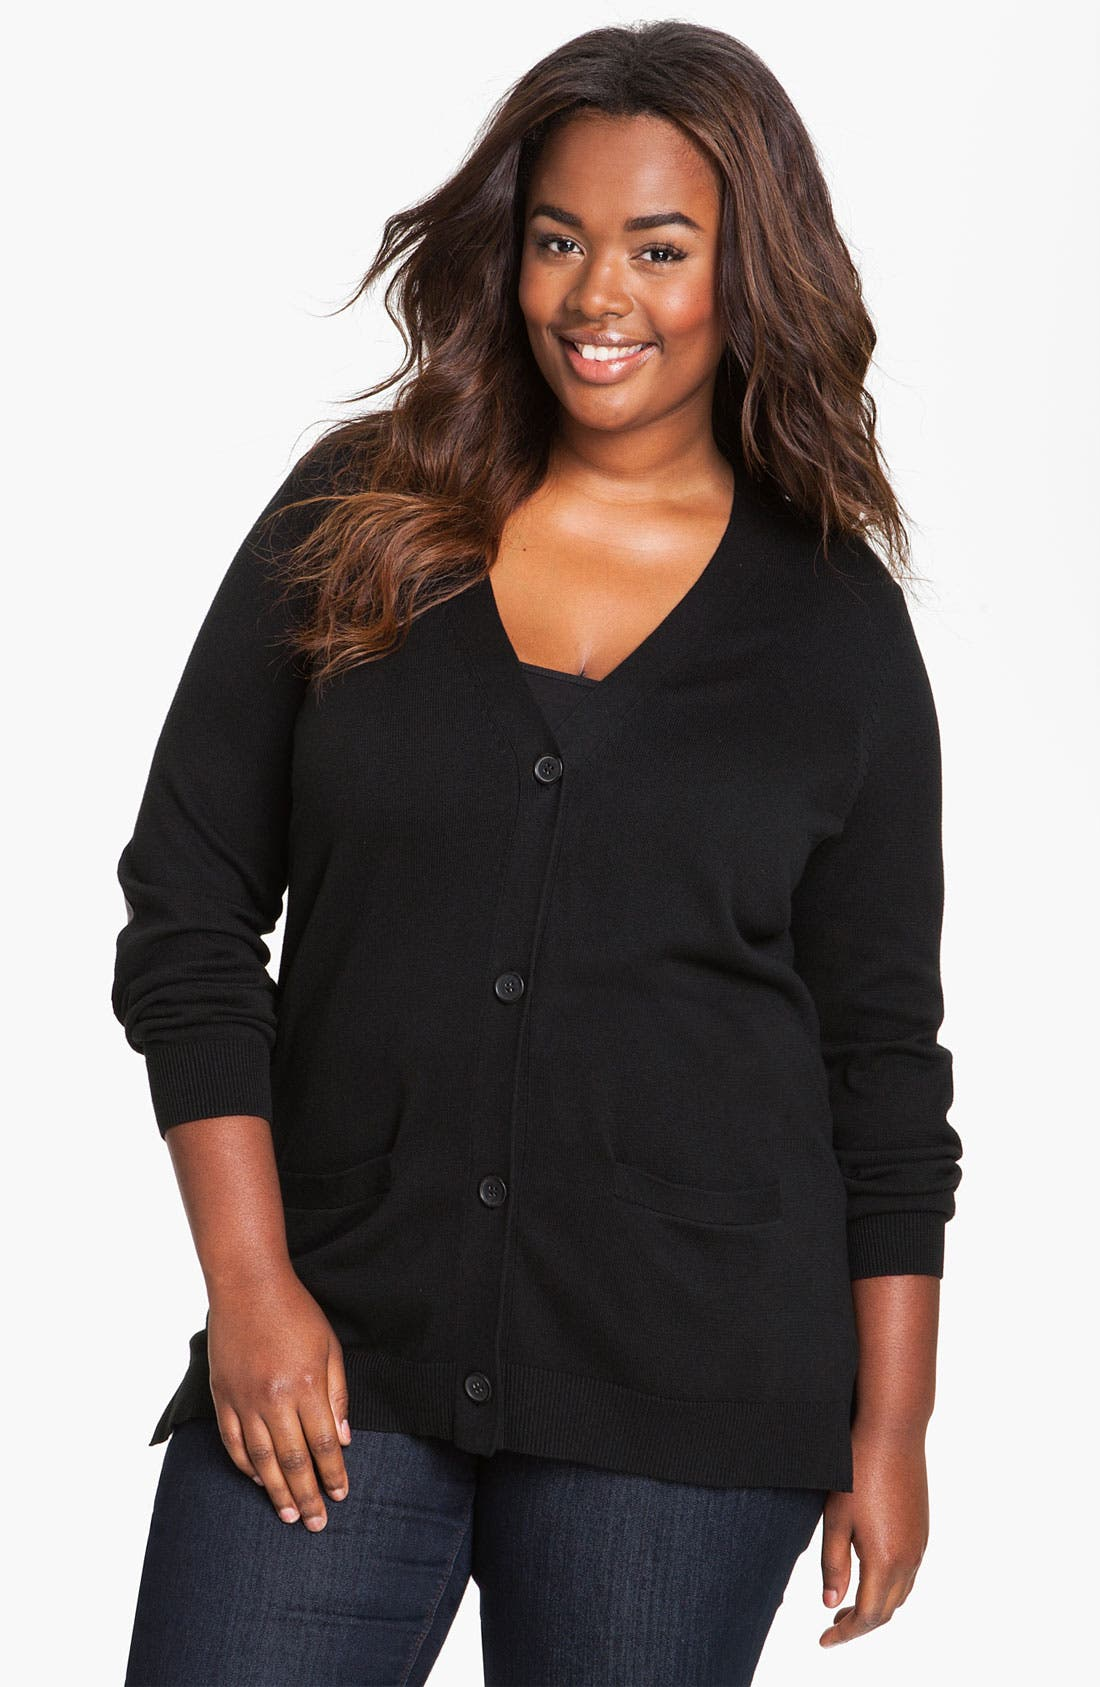 Alternate Image 1 Selected - Vince Camuto Elbow Patch Cardigan (Plus)